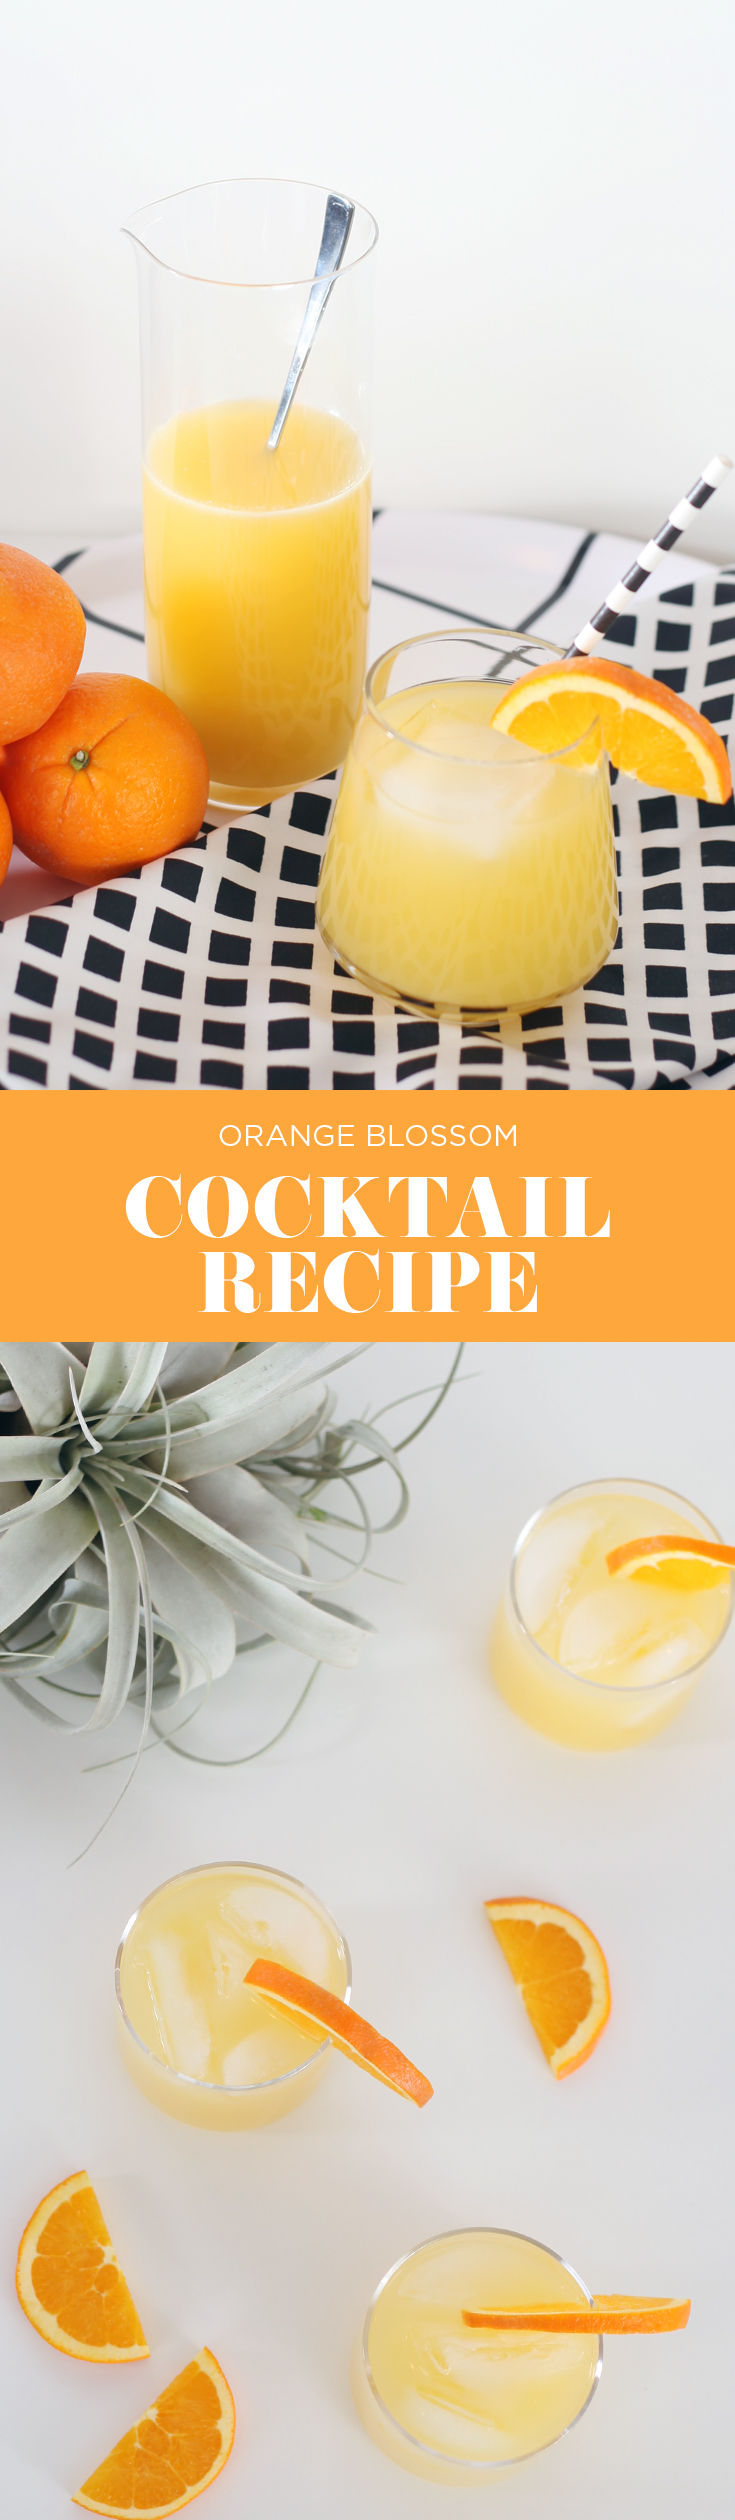 A great drink for fall or summer. This orange blossom cocktail recipe contains orange vodka, lillet blanc and sparkling sake. A great drink for a party, signature drink or just gathering with friends on the patio. Click through for the complete recipe on House Of Hipsters Blog!